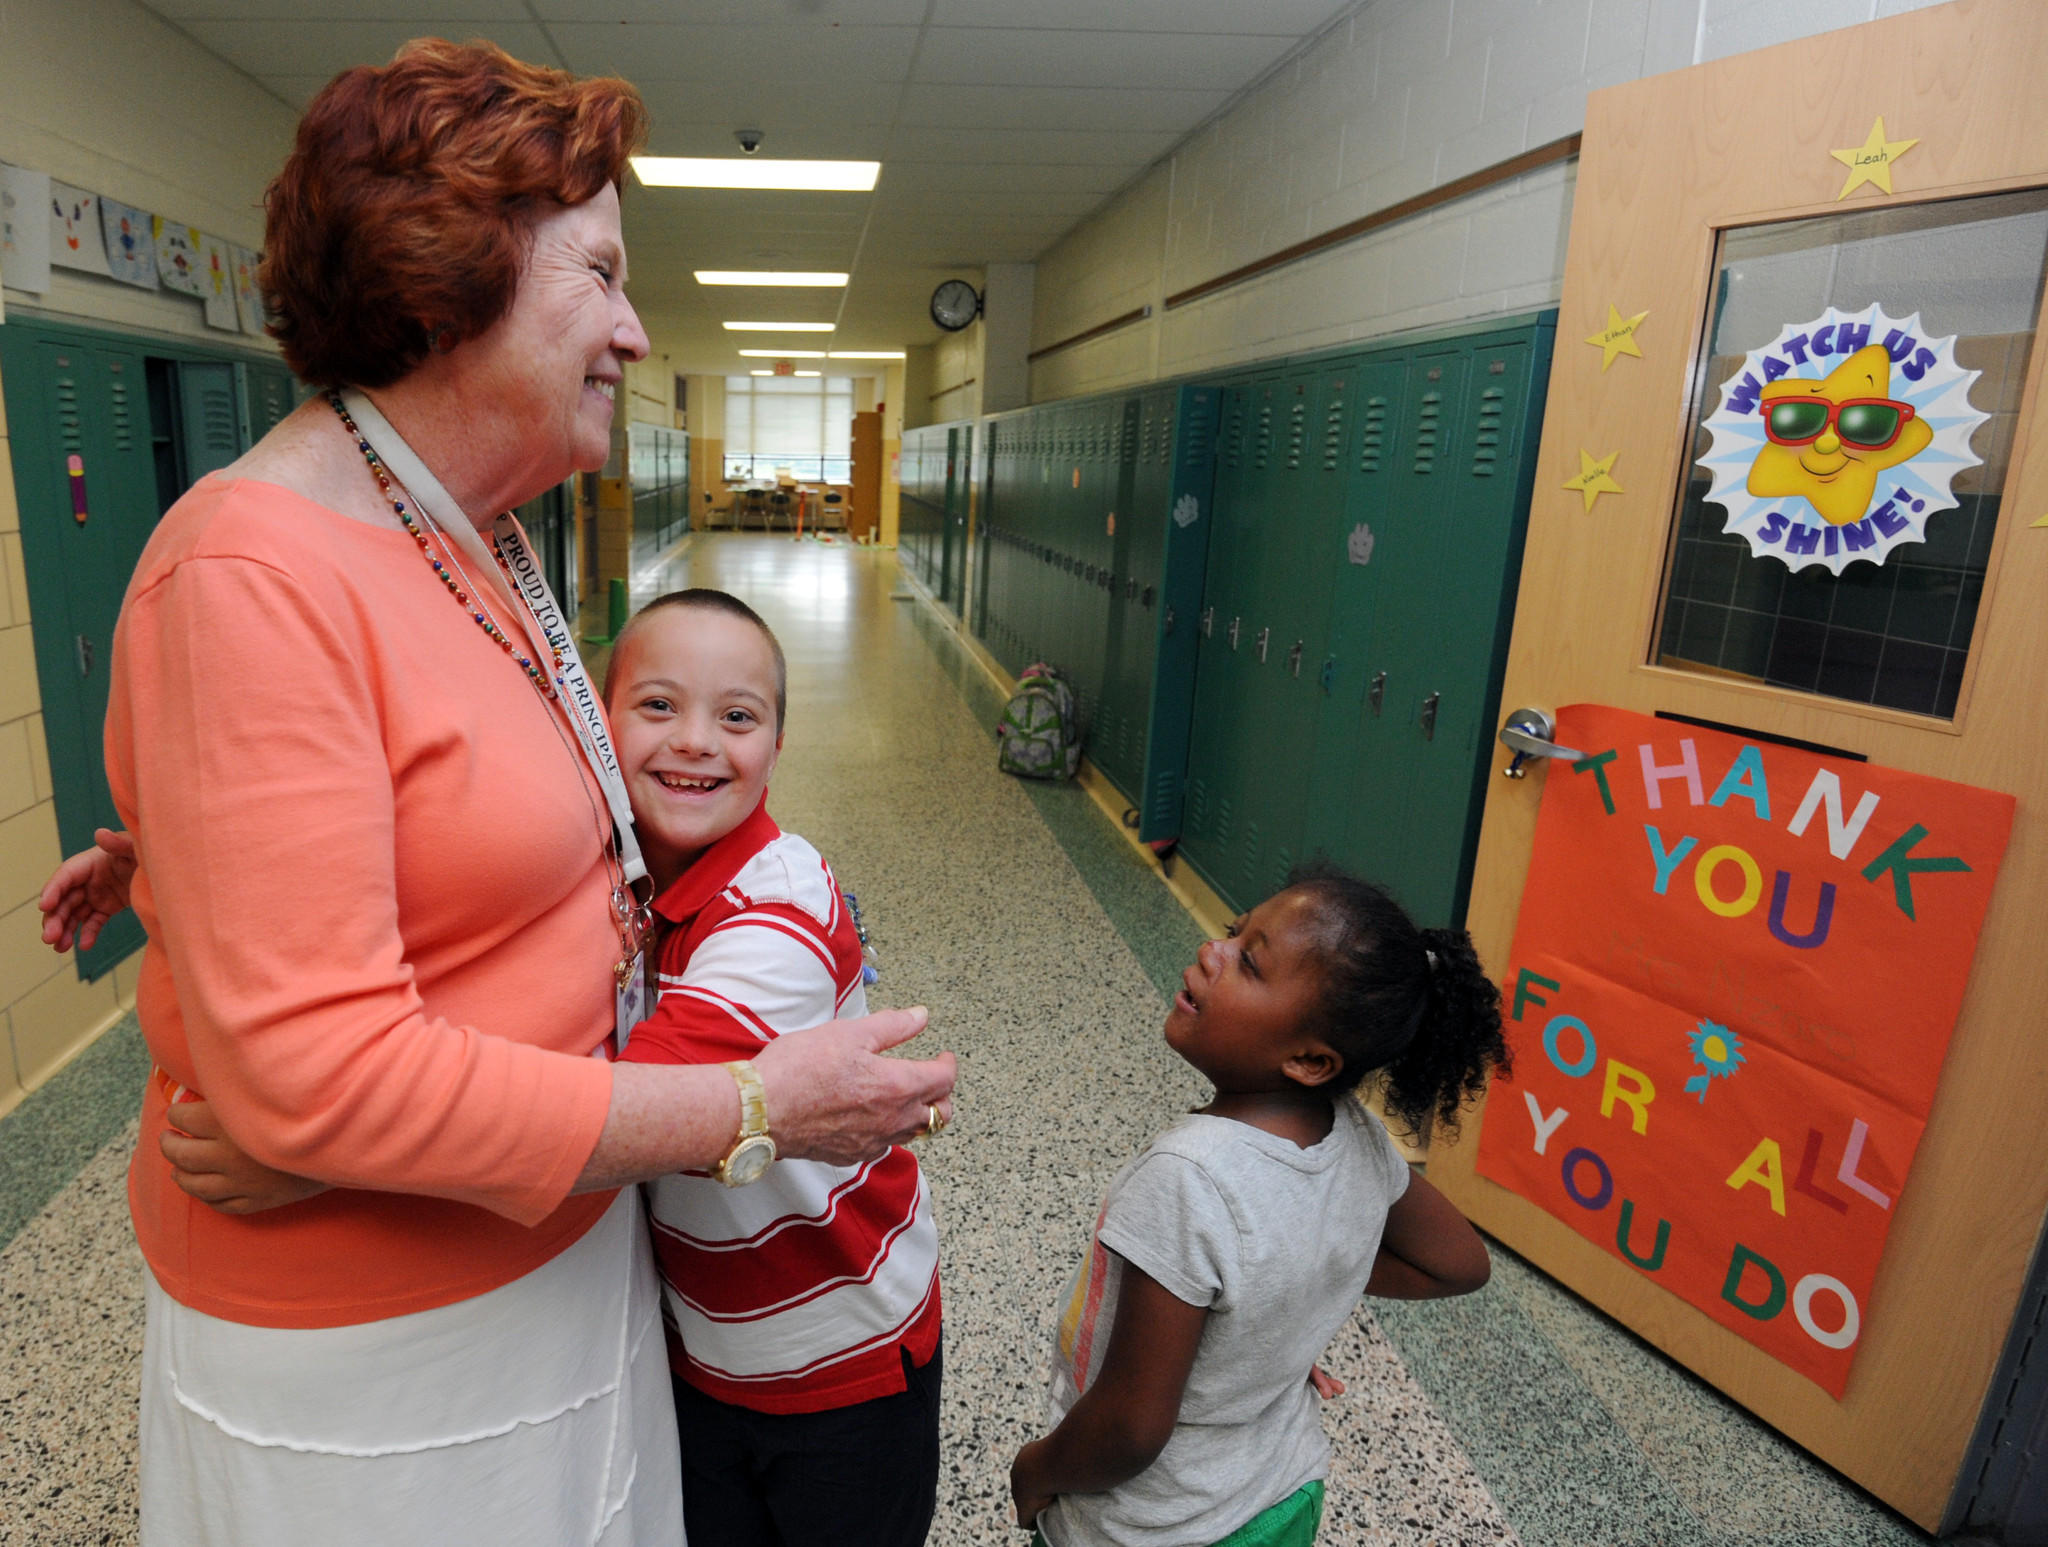 Susan Errichiello, the retiring principal of Belvedere Elementary School in Anne Arundel County, gets a hug from Ethan Baumunk, 10, as Noelle Gunder, 11, watches last week.